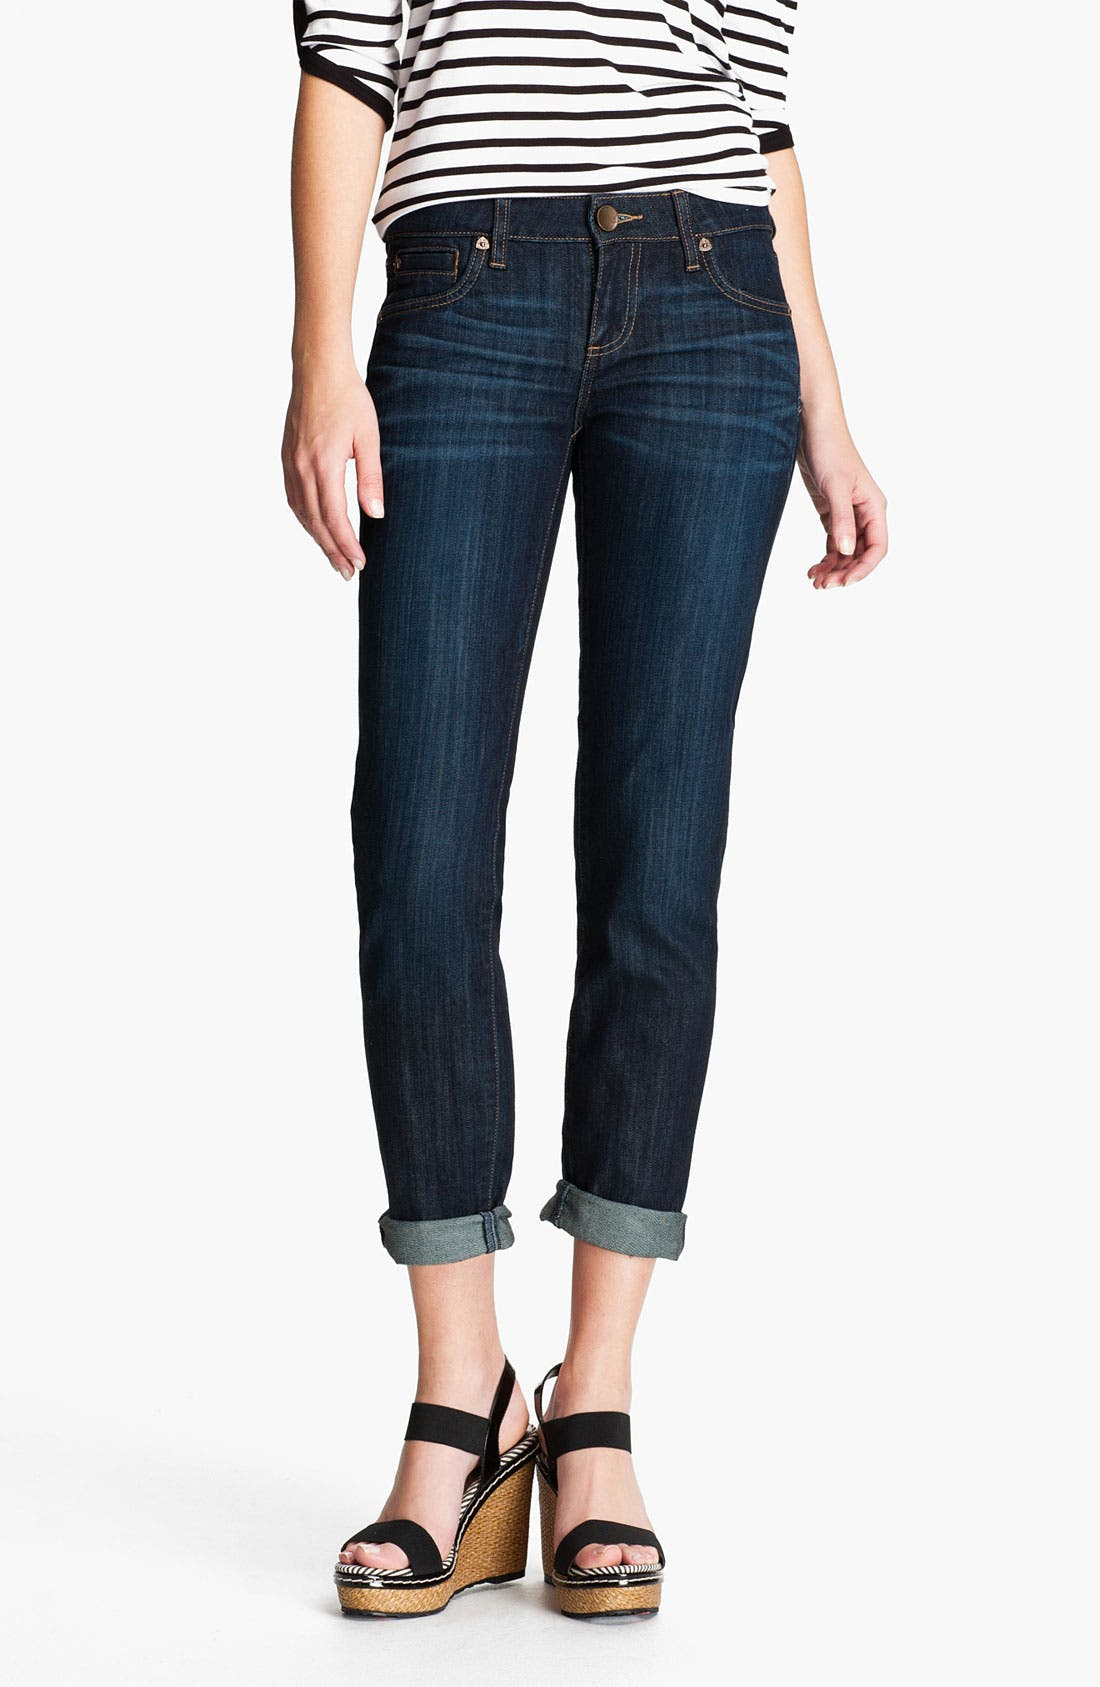 Alternate Image 1 Selected - KUT from the Kloth 'Catherine' Boyfriend Jeans (Petite)